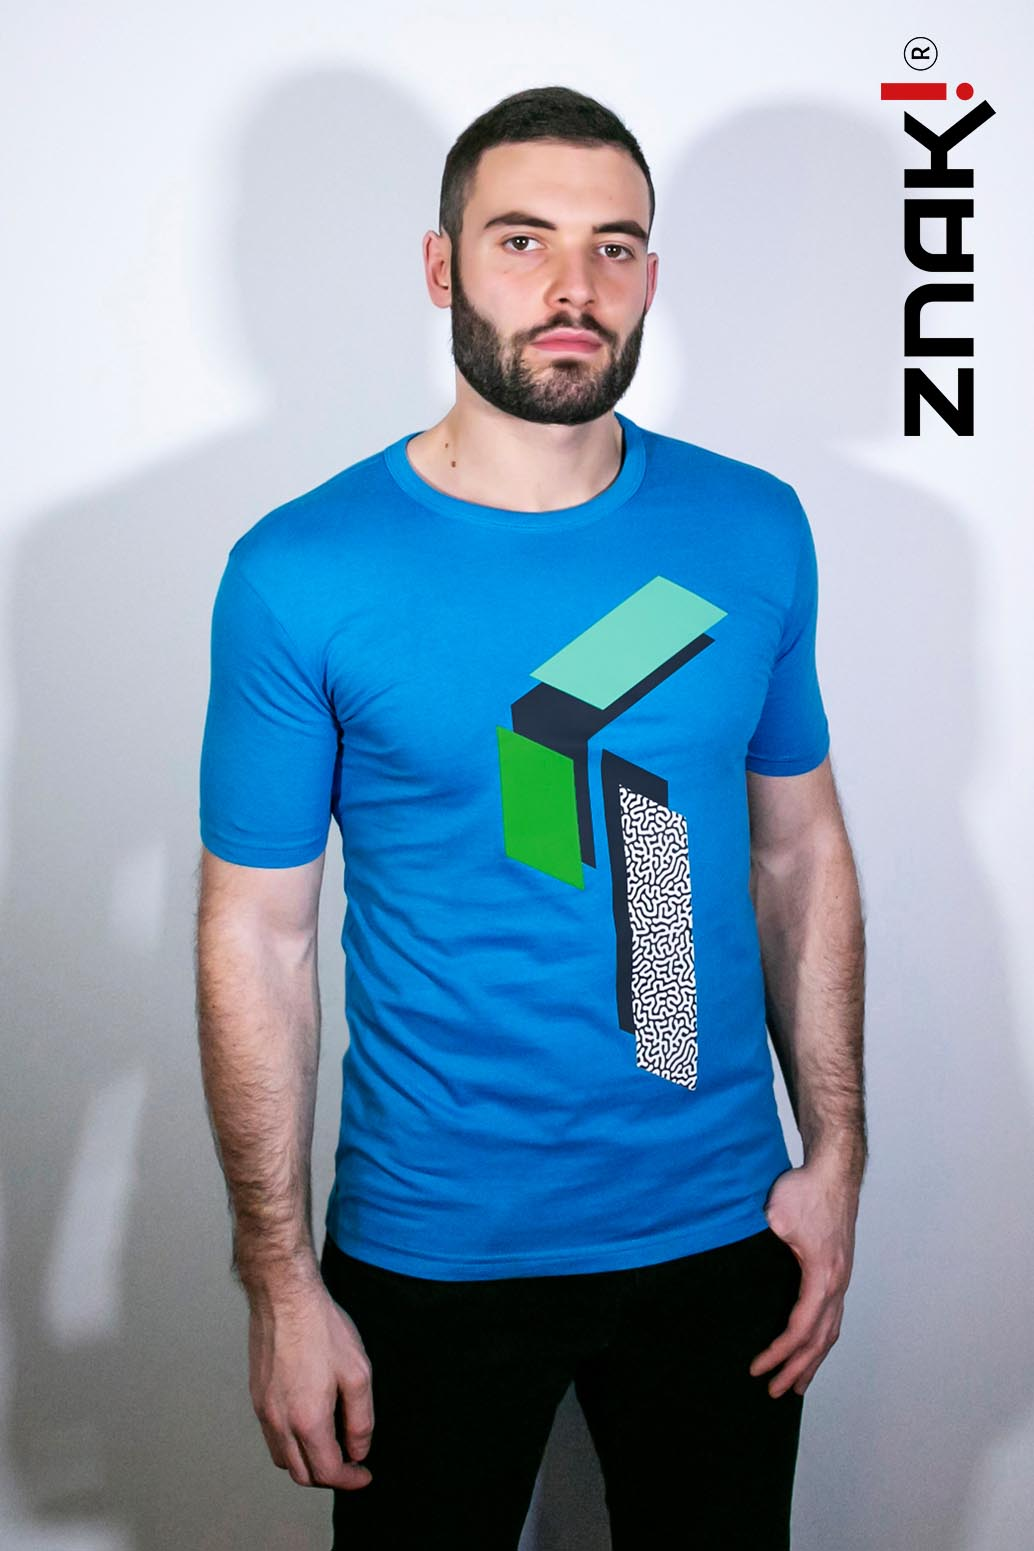 tshirt znak - satellite